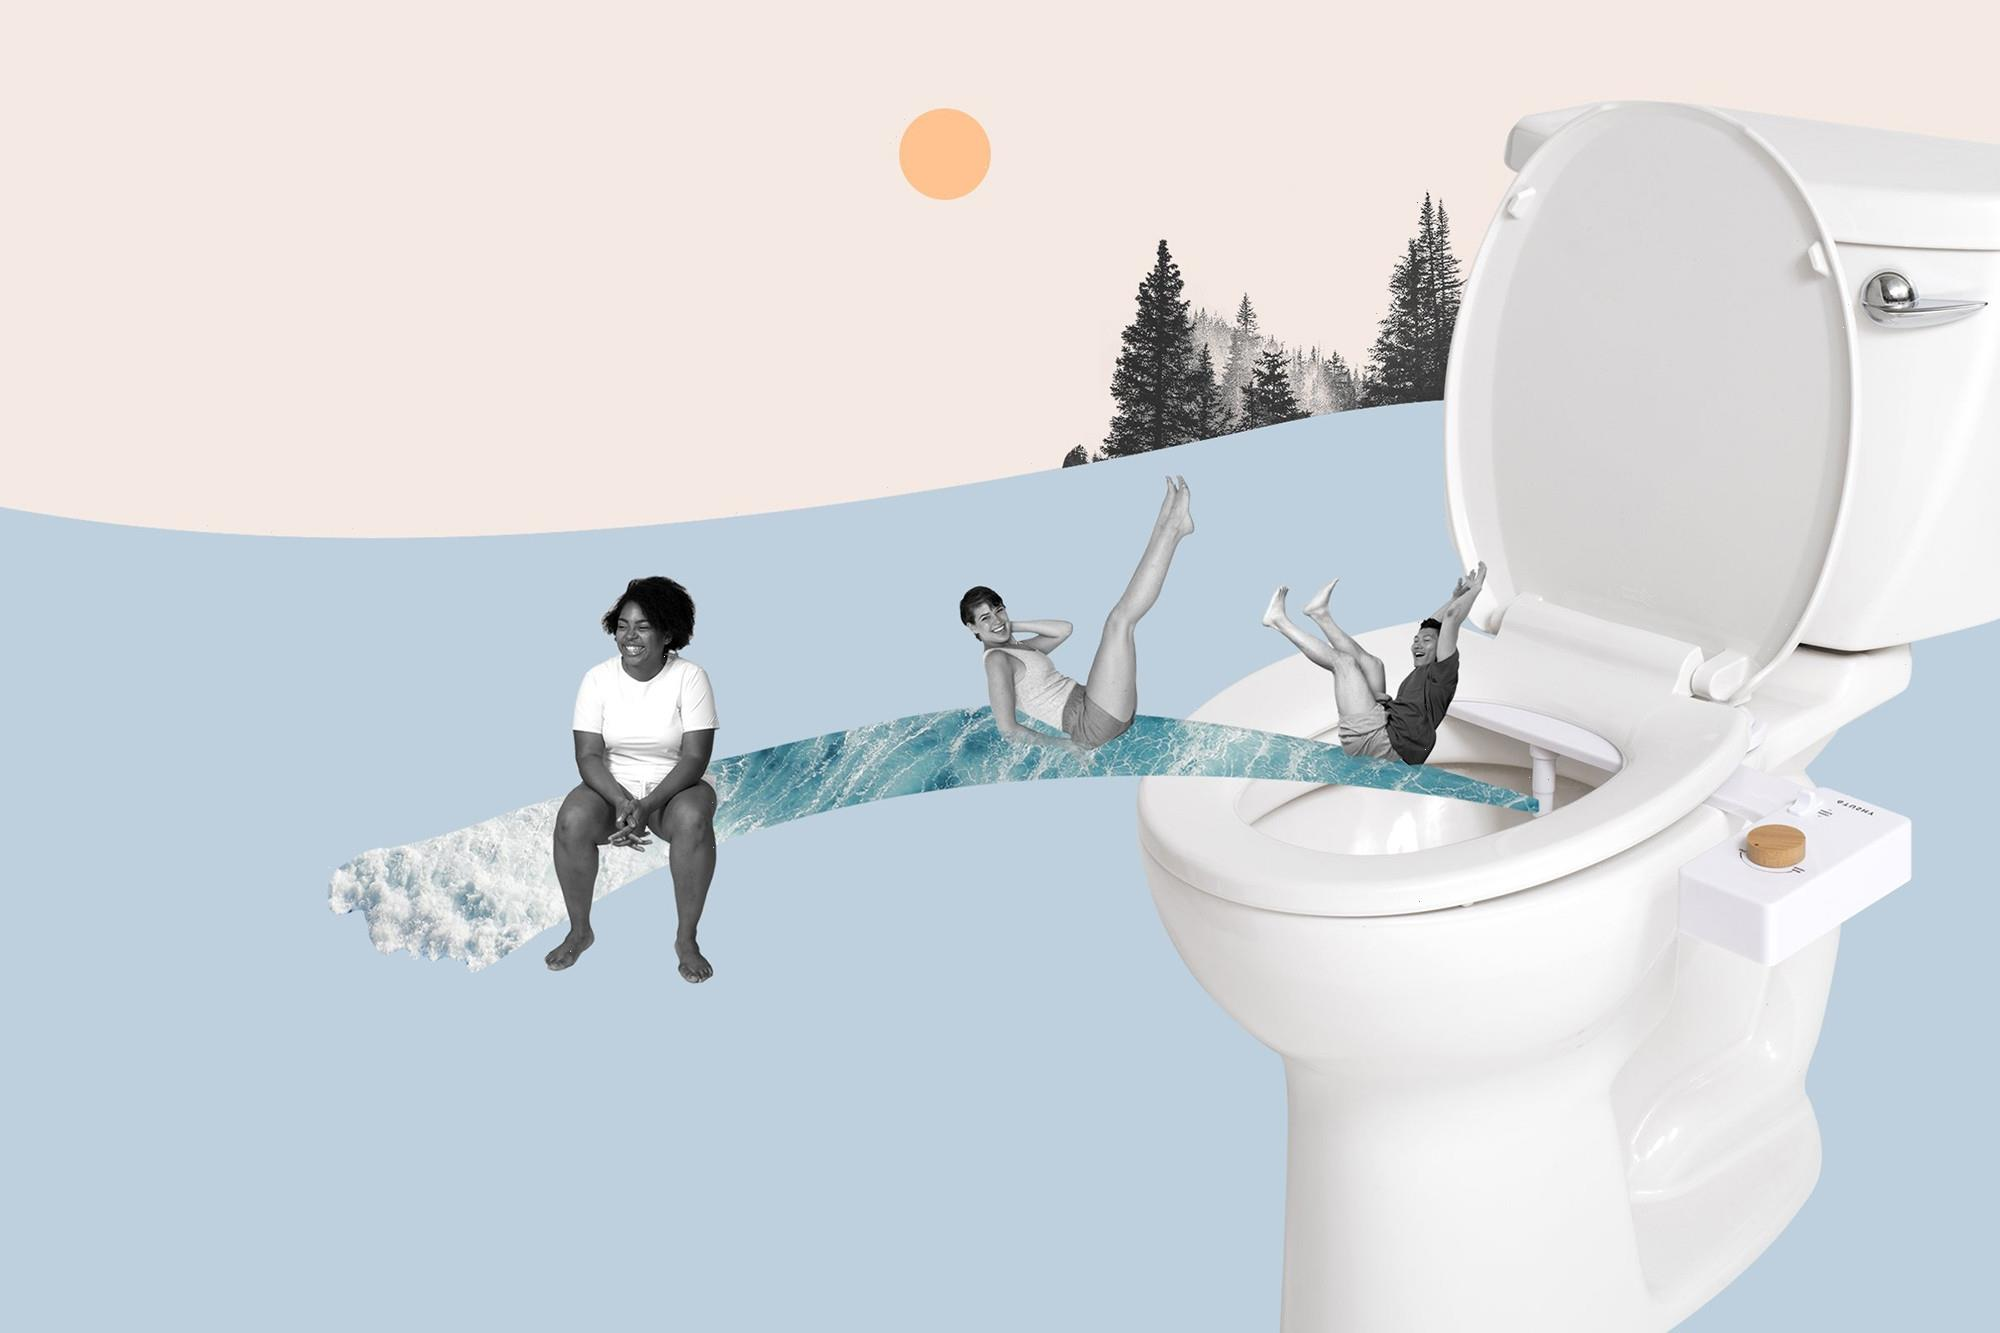 Nature called — and this one-day Tushy bidet sale answered